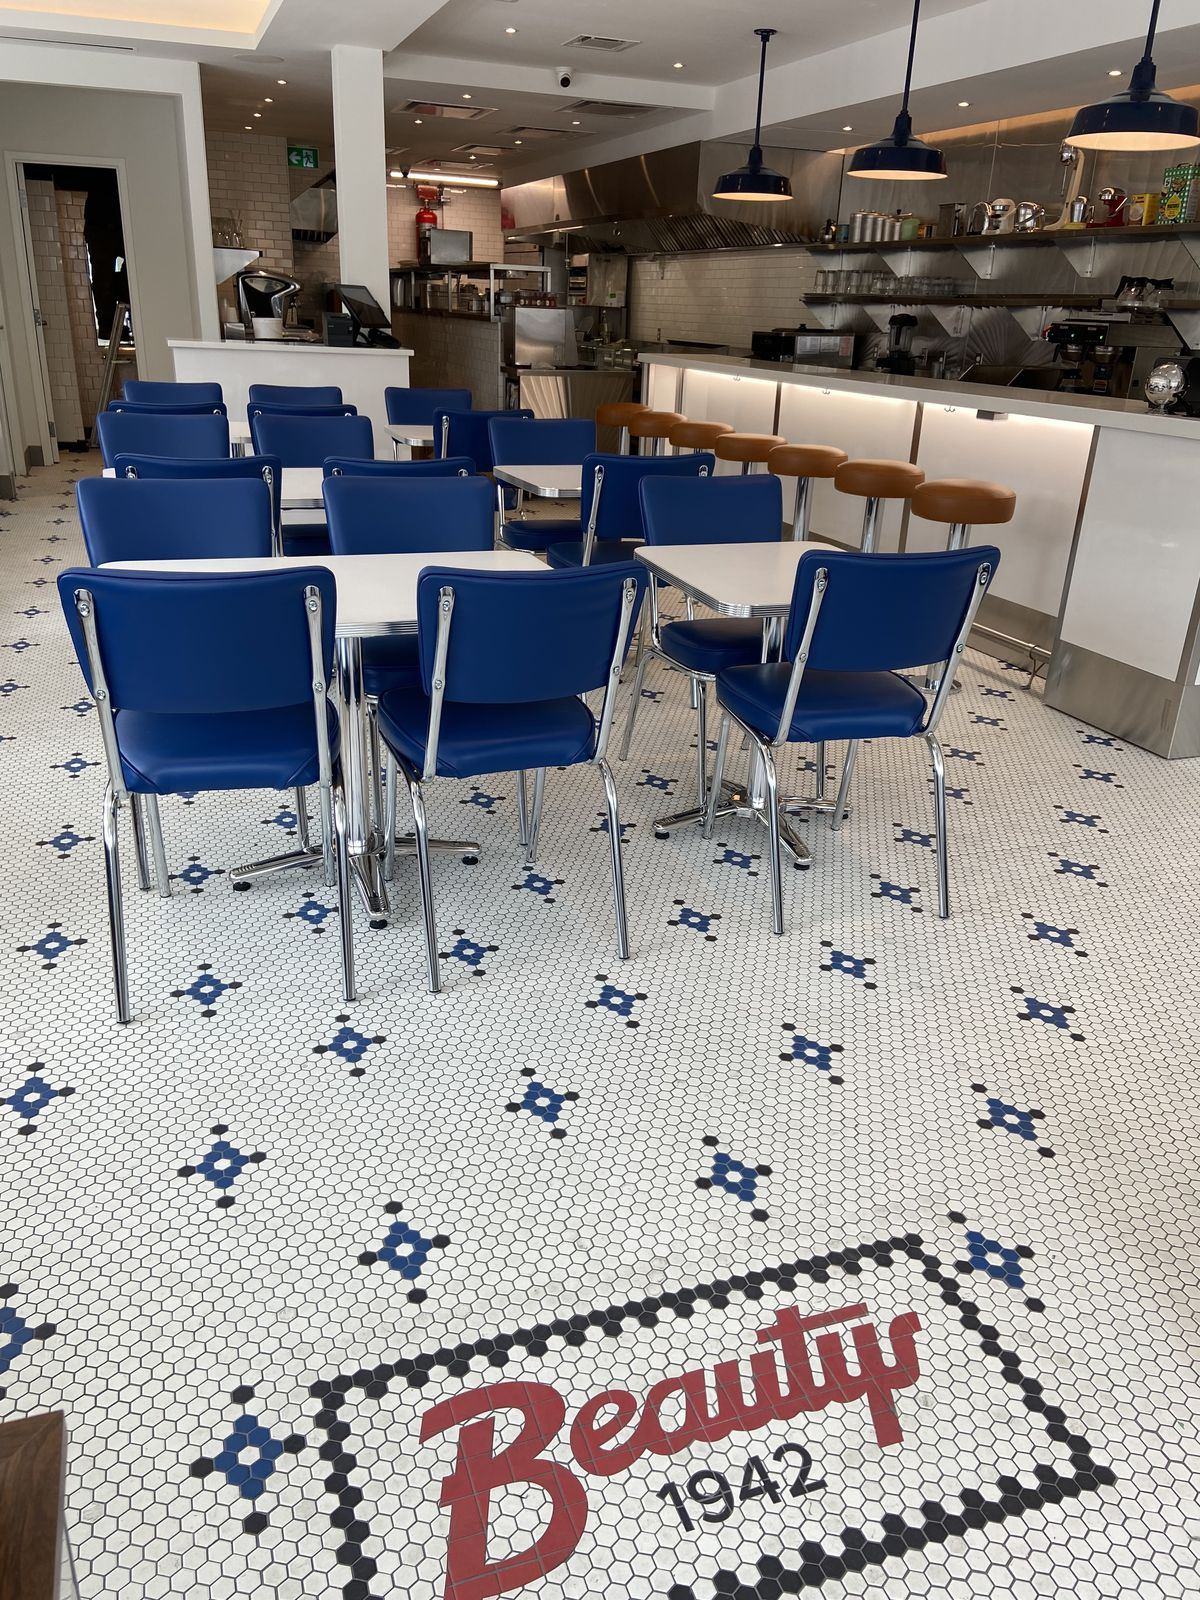 inside diner with mosaic flooring and blue seating